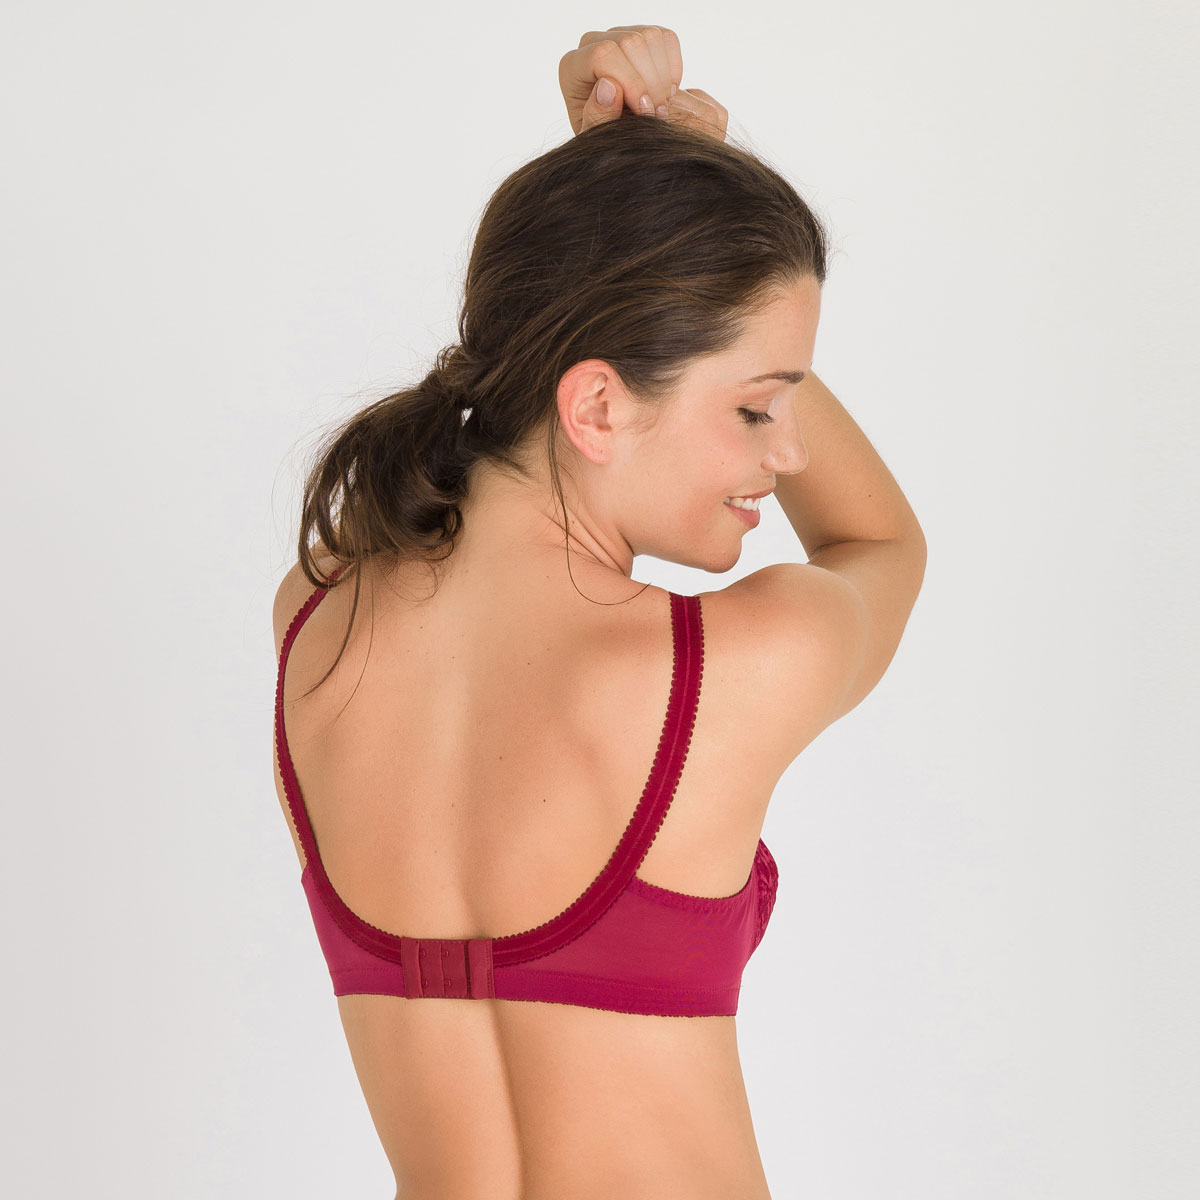 Non-wired Bra in Dark red – Cross Your Heart 556 -PLAYTEX